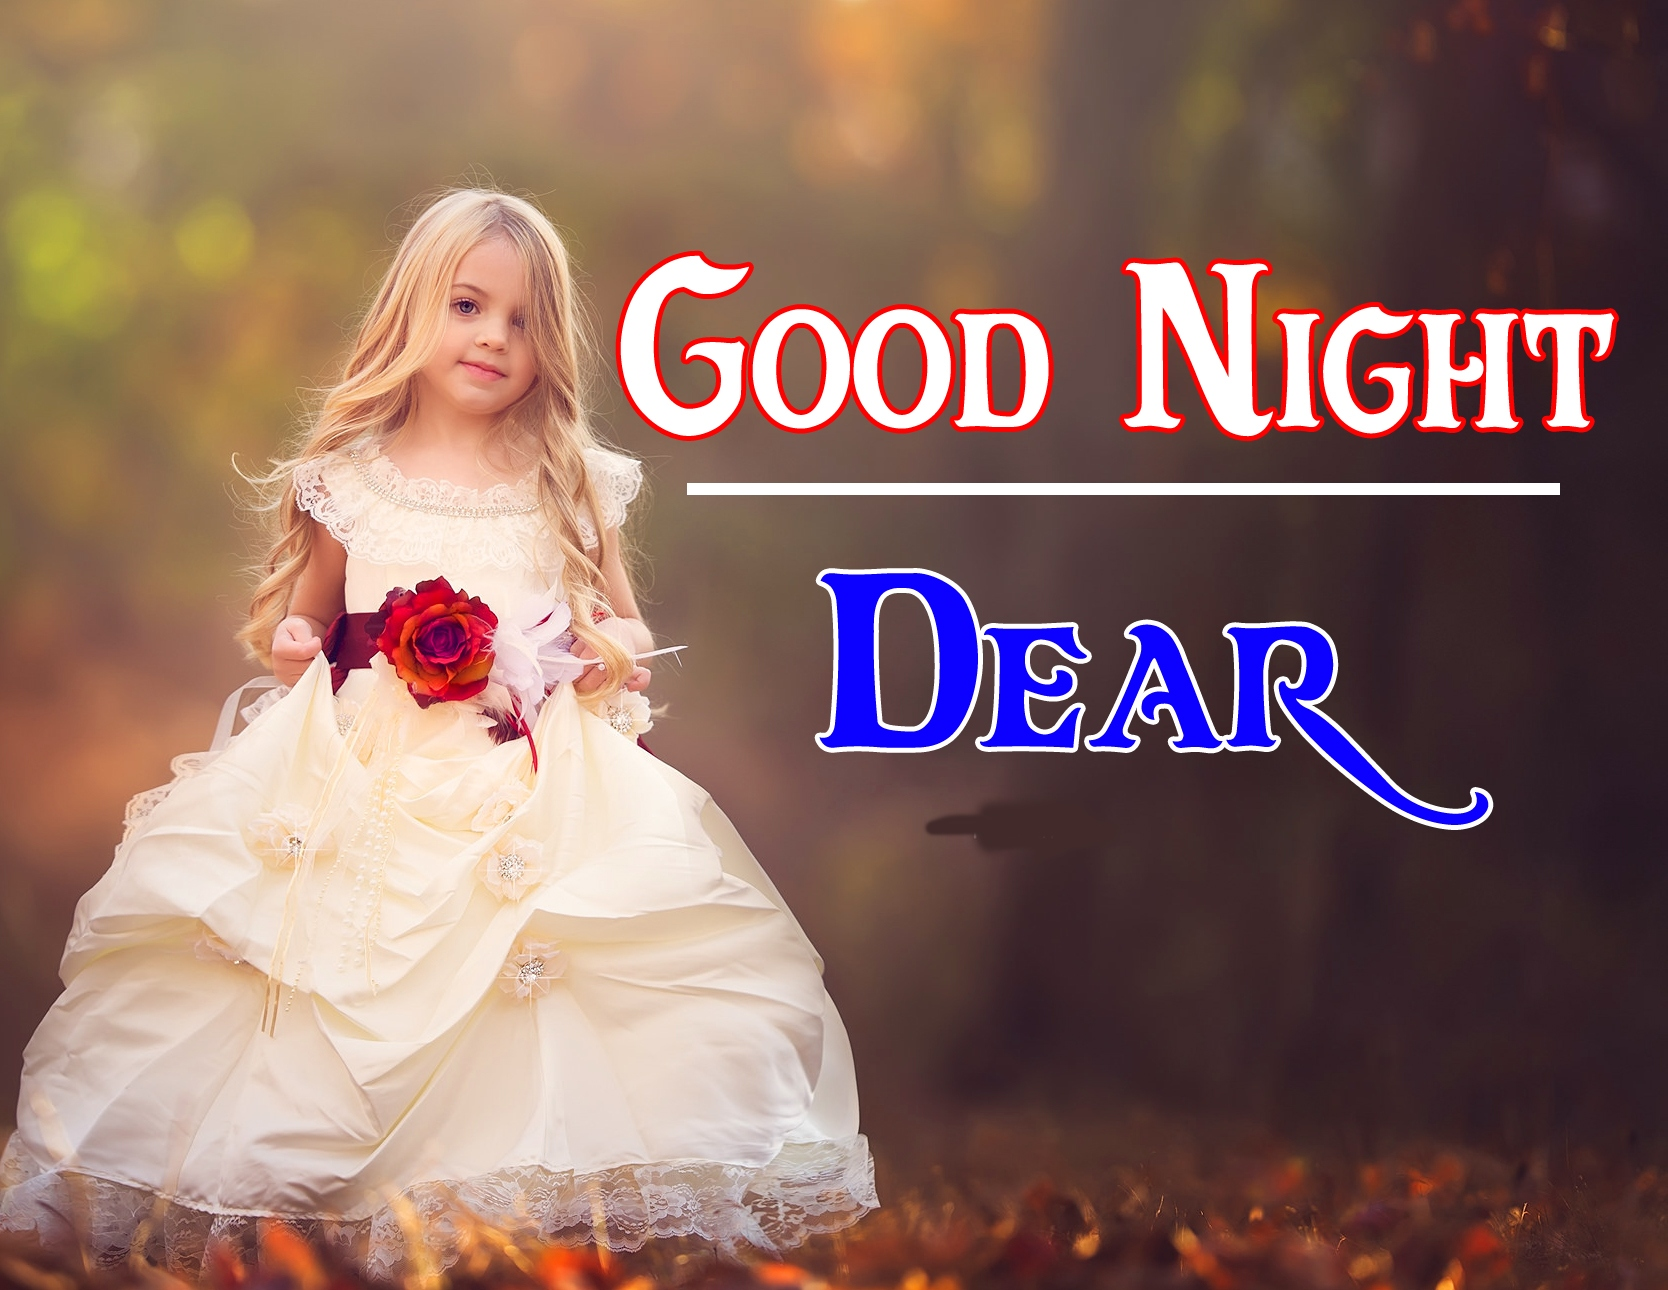 Good night wallpaper hd 54 1